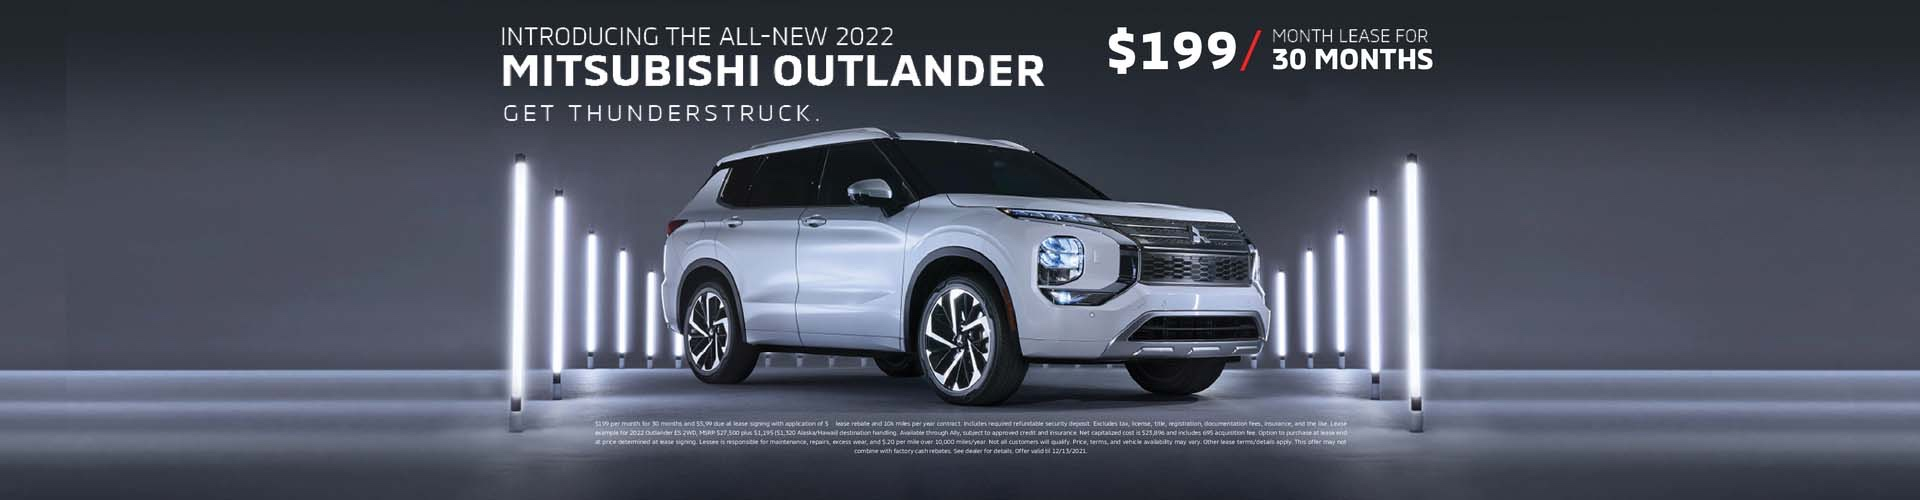 Lease the 2019 Mitsubishi Outlander PHEV for $199 per month.